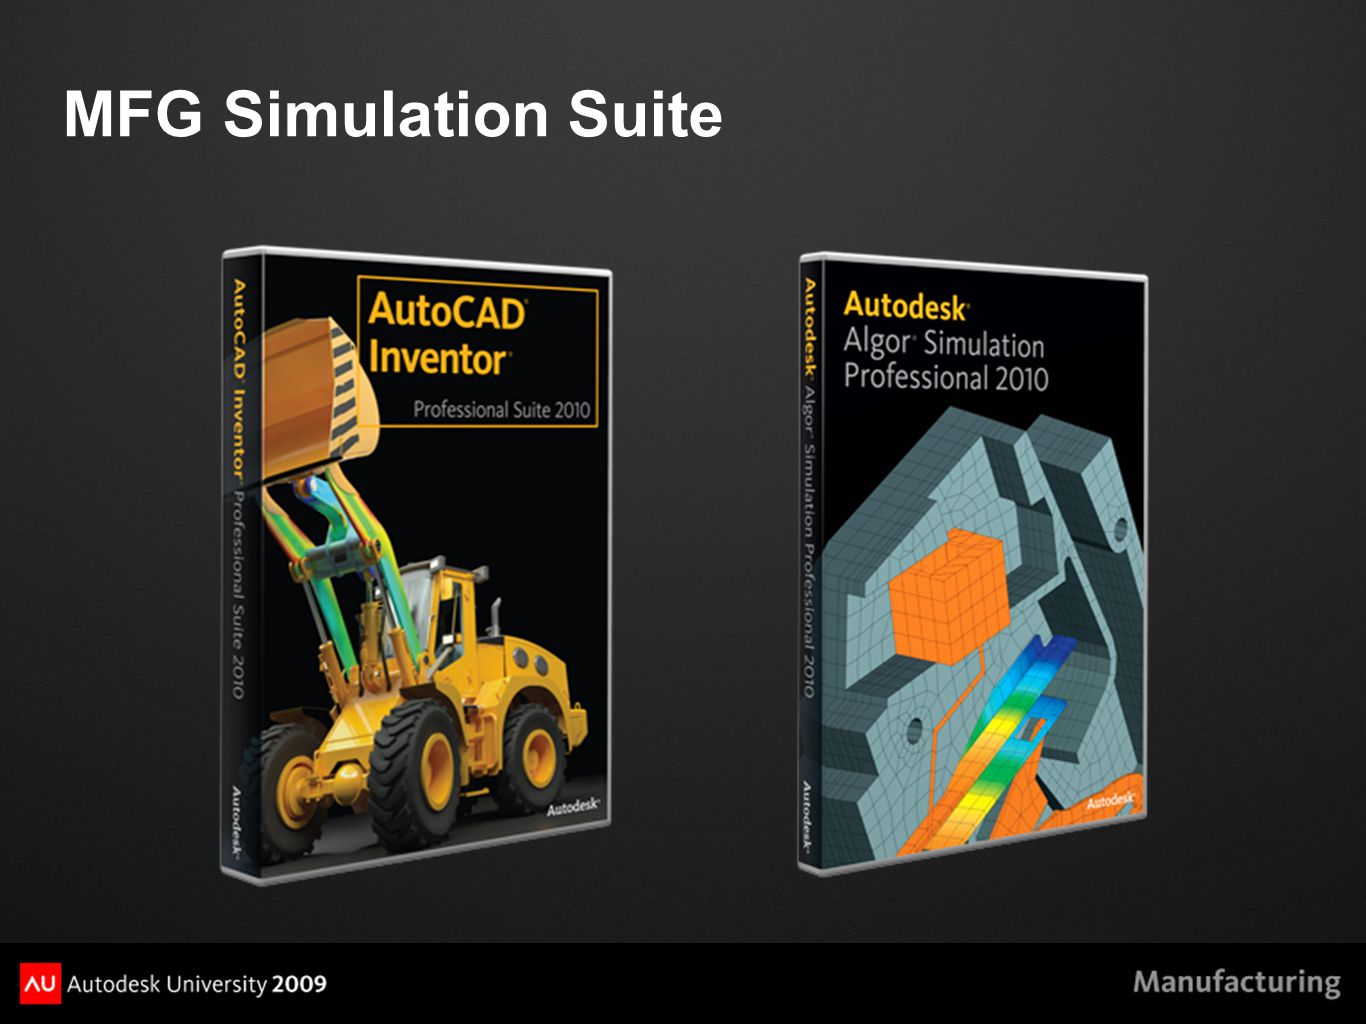 MFG Simulation Suite